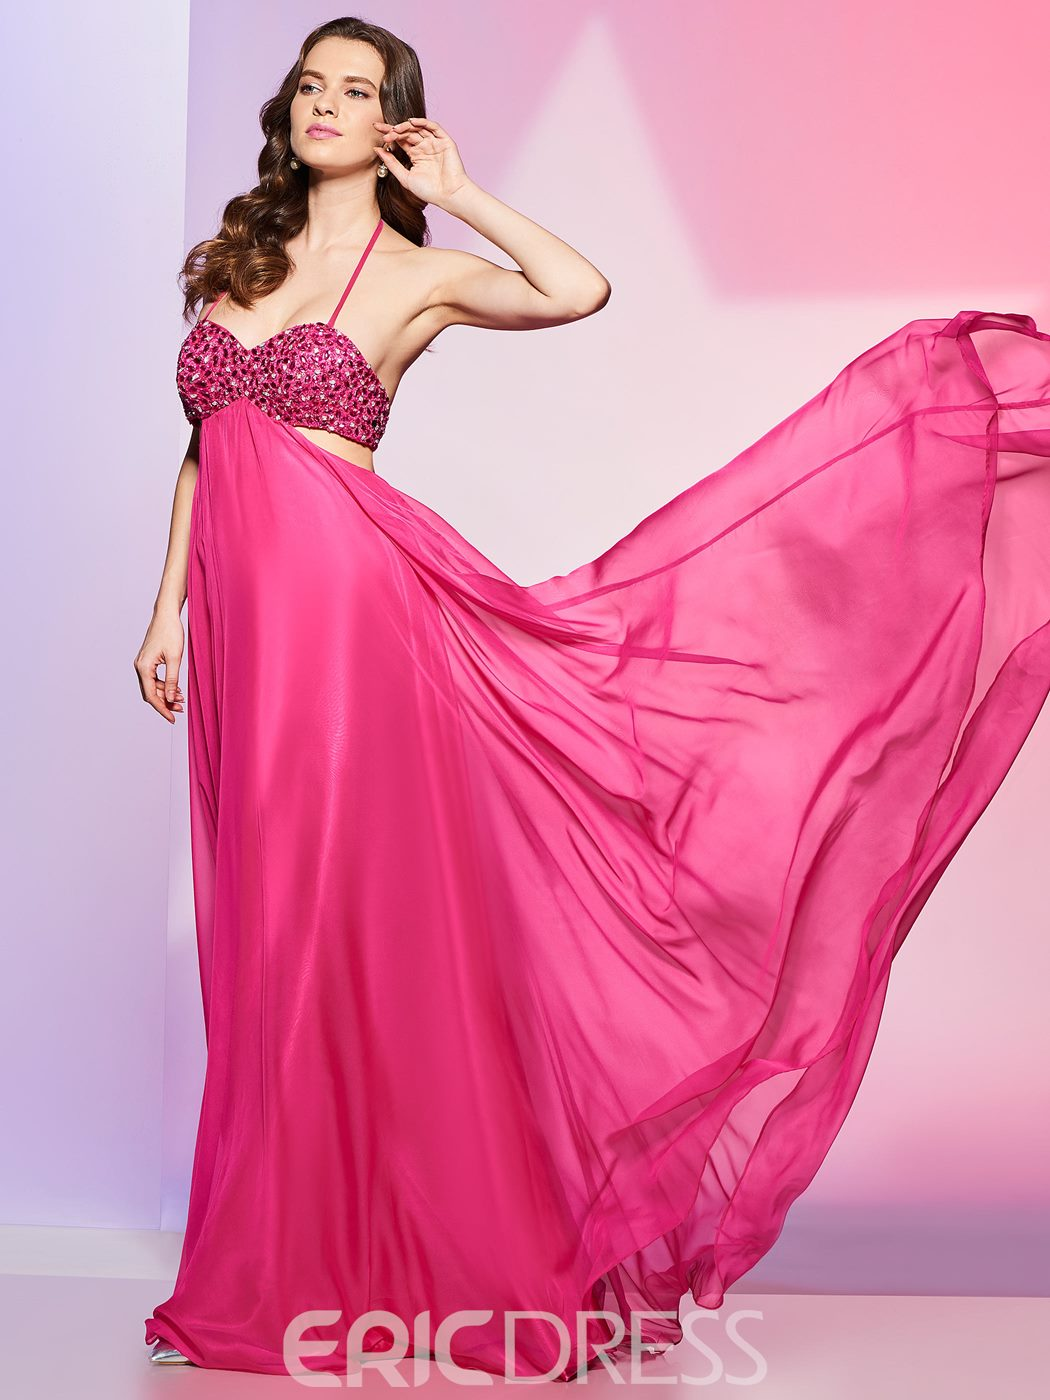 Ericdress Sexy Spaghetti Straps Beaded Sweetheart Backless Prom Dress